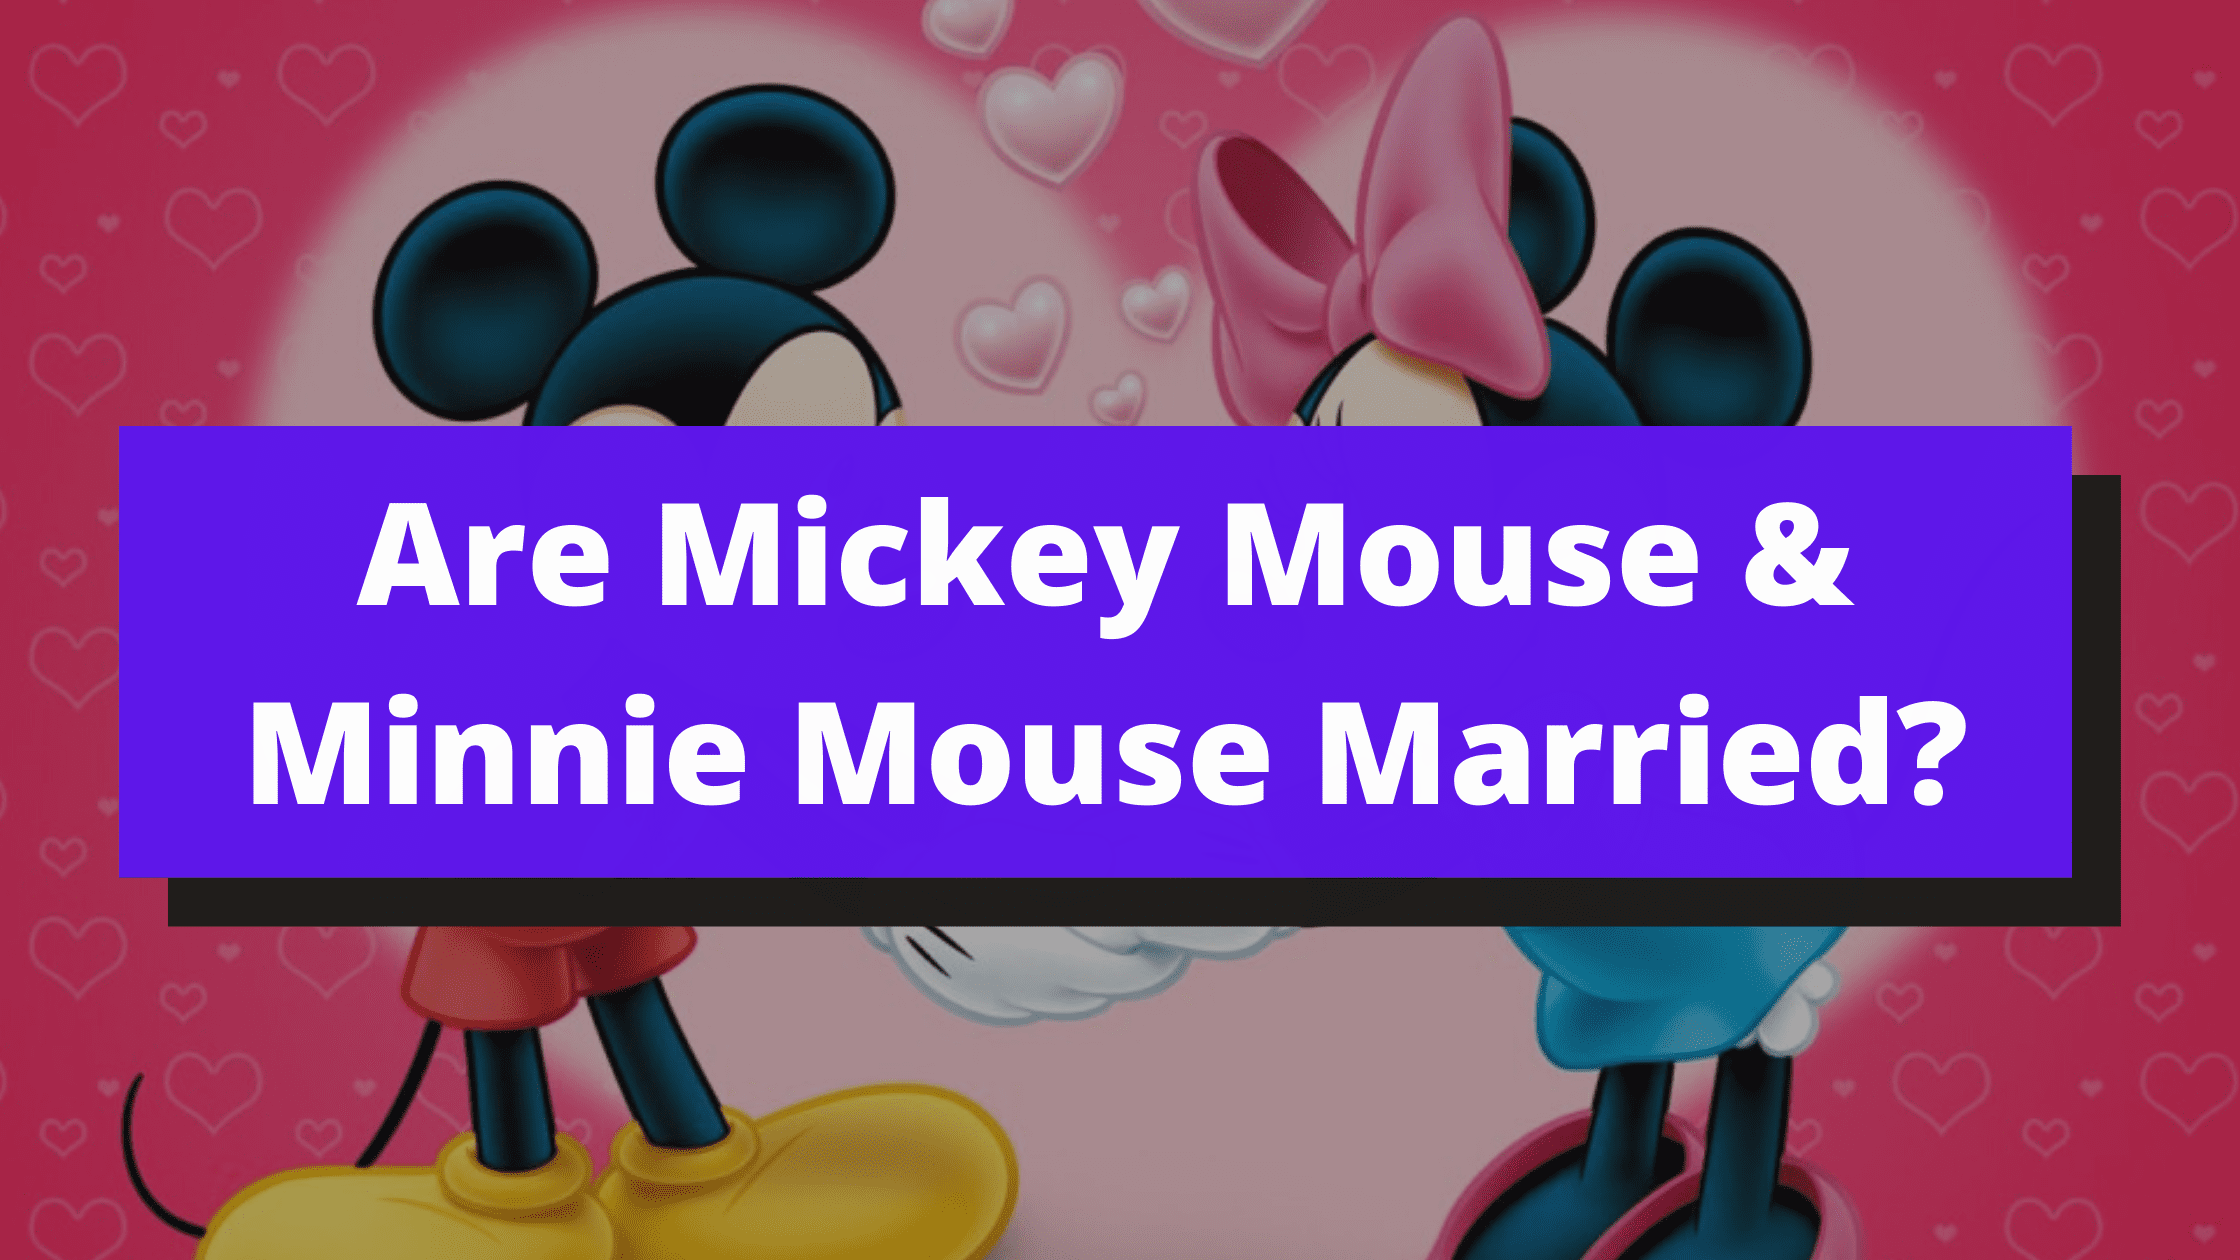 Are Mickey and Minnie Mouse Married, Twins, Related, or Siblings? | Fun Facts